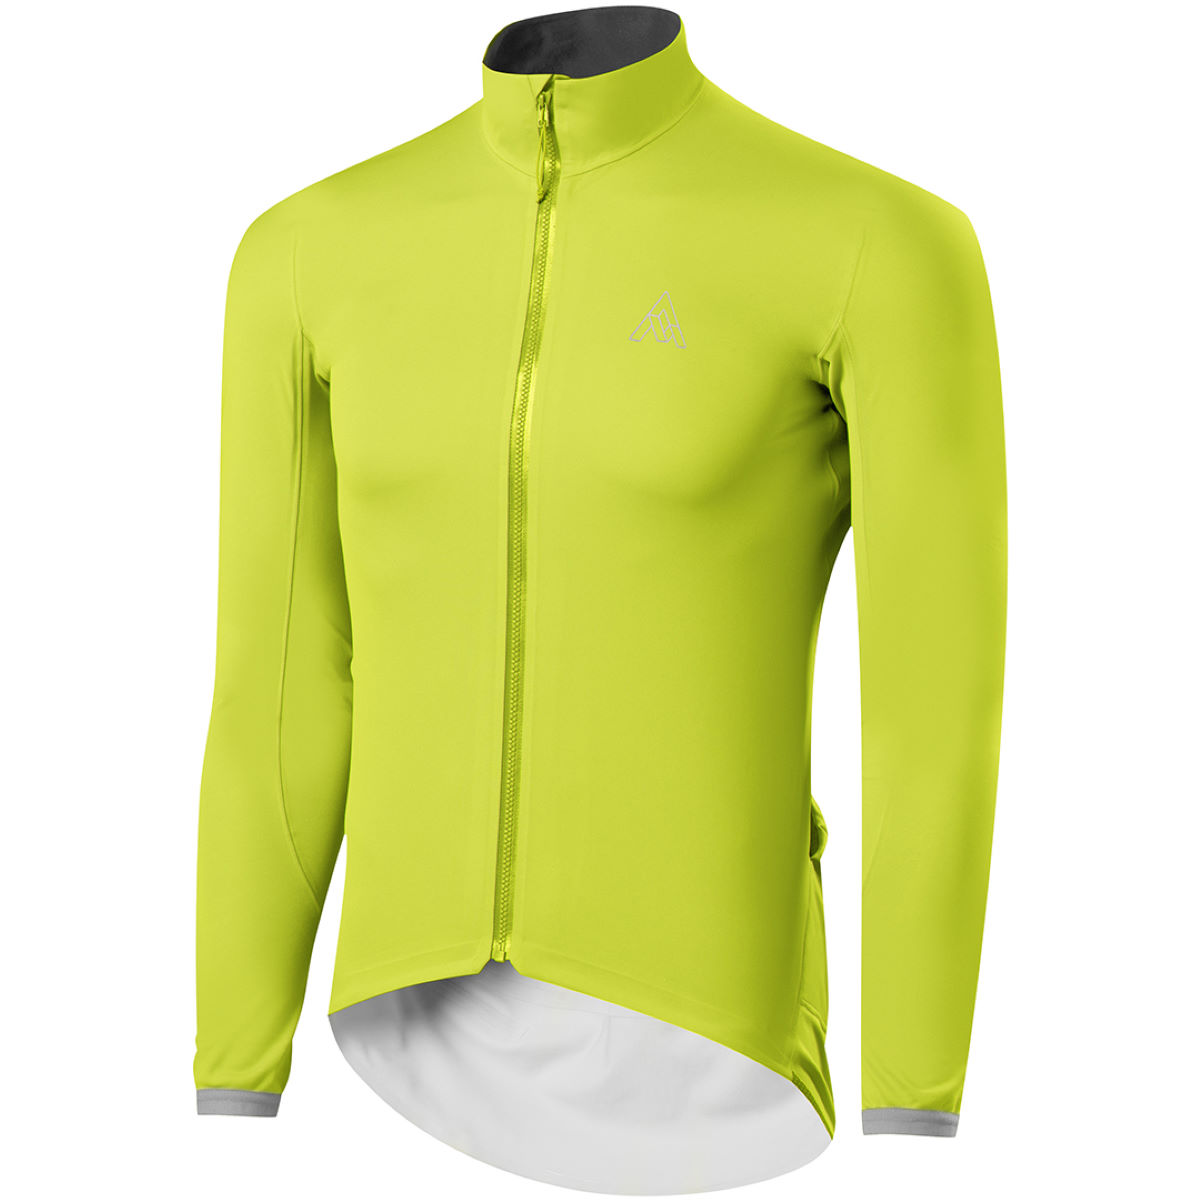 Maillot 7Mesh Corsa Softshell Windstopper - Cortavientos - ciclismo